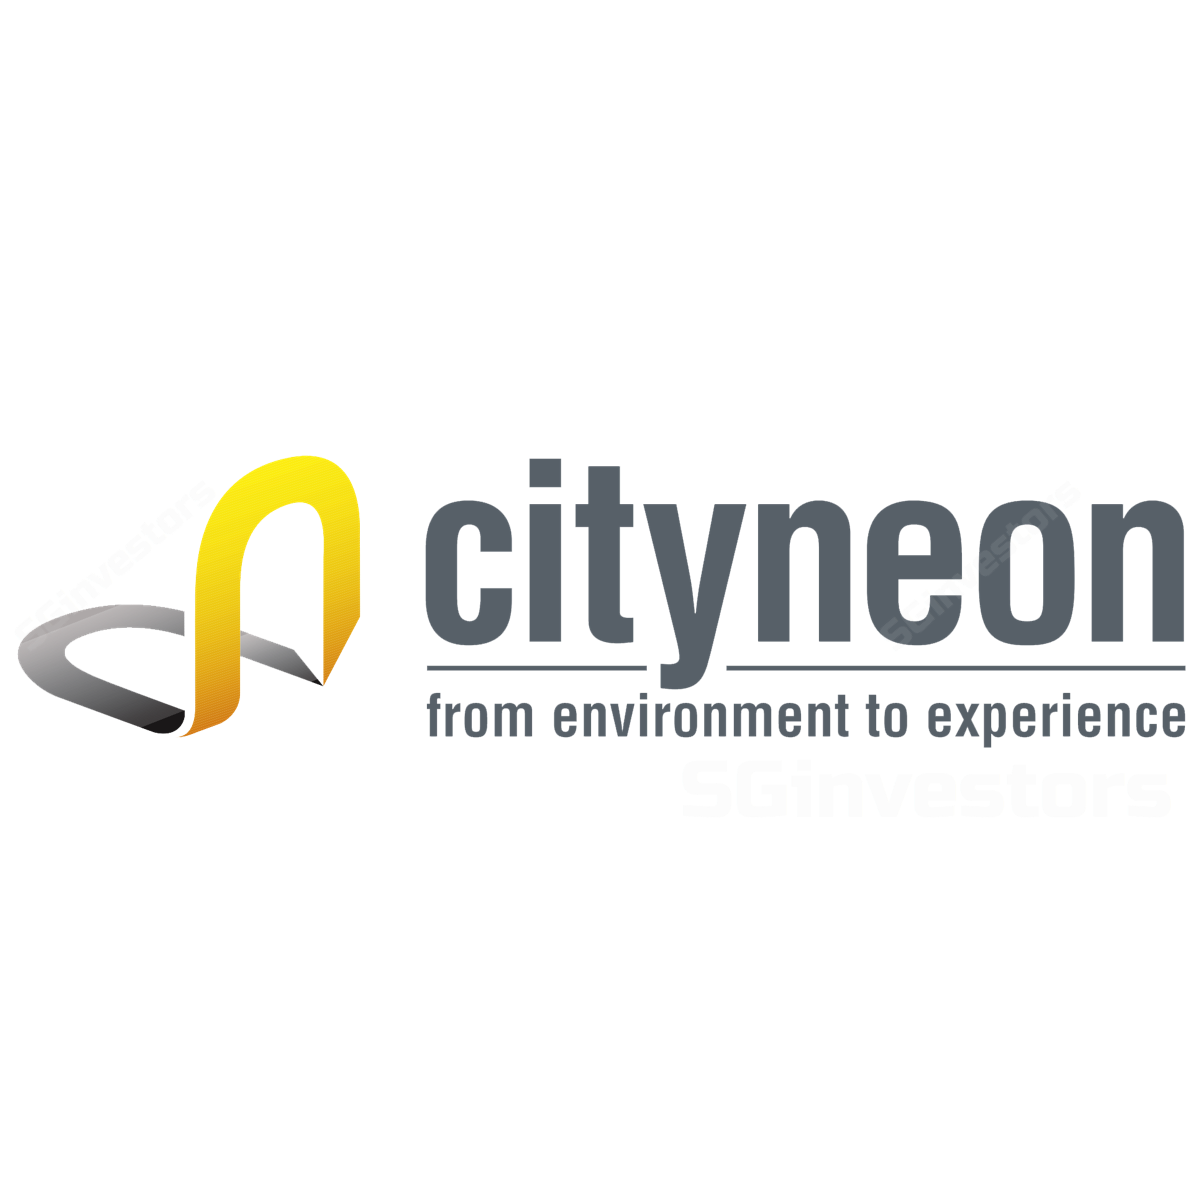 Cityneon Holdings (CITN SP) - Maybank Kim Eng 2017-02-07: A Marvel-lous Move